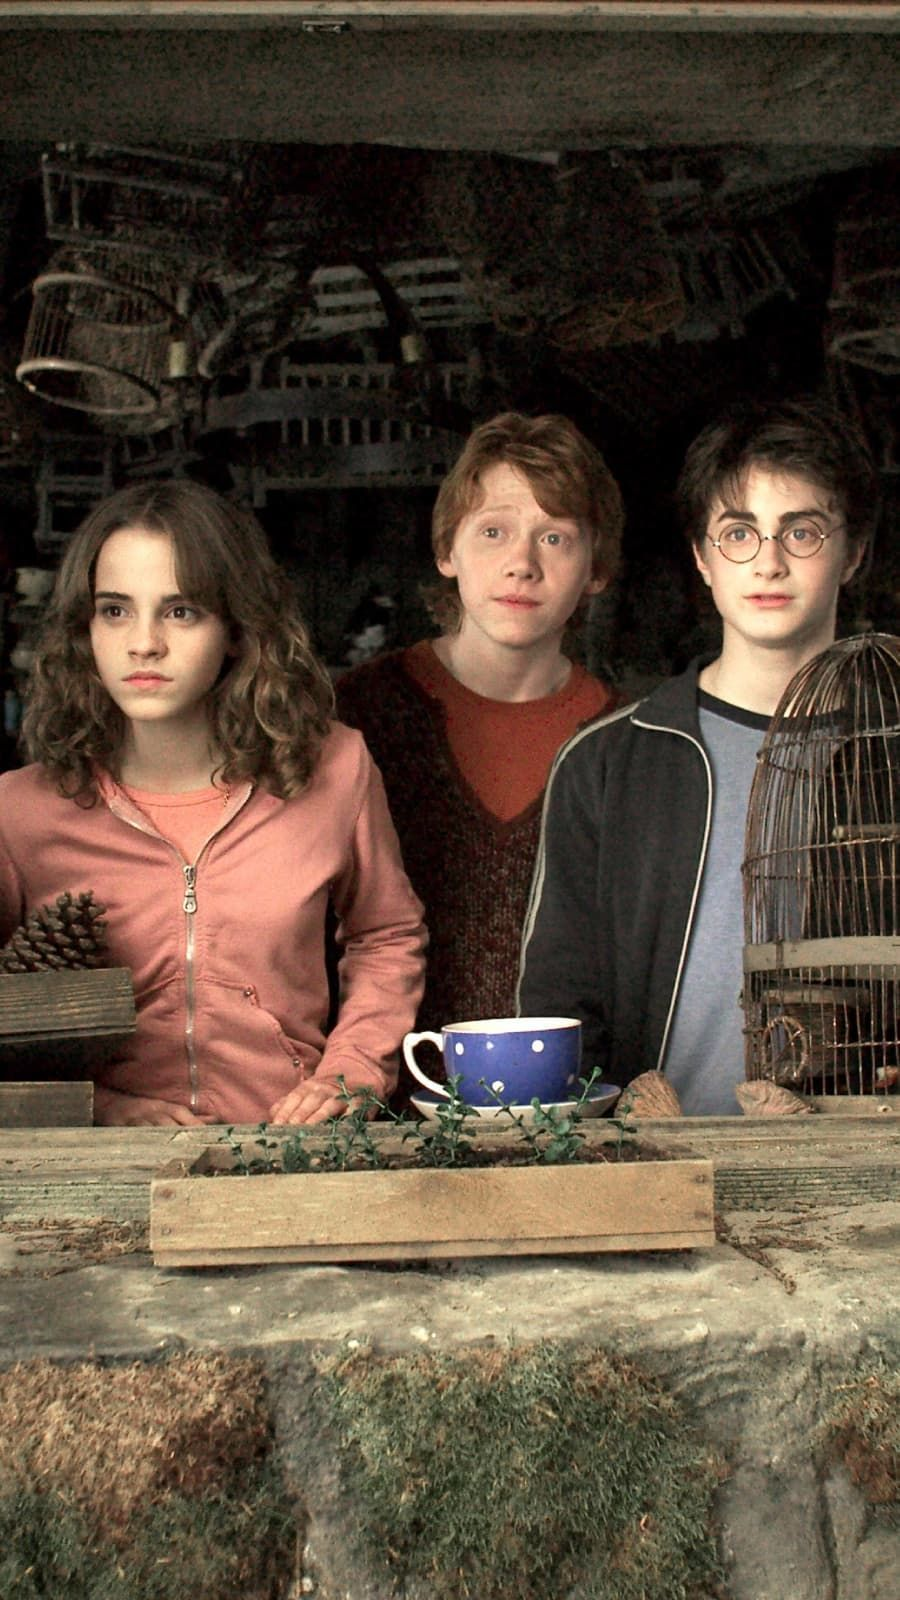 Emma Watson Rupert Grint And Daniel Radcliffe In Harry Potter And The Prisoner Of Azkaban Daniel Radcliffe Harry Potter Harry Potter Images Harry Potter Ron